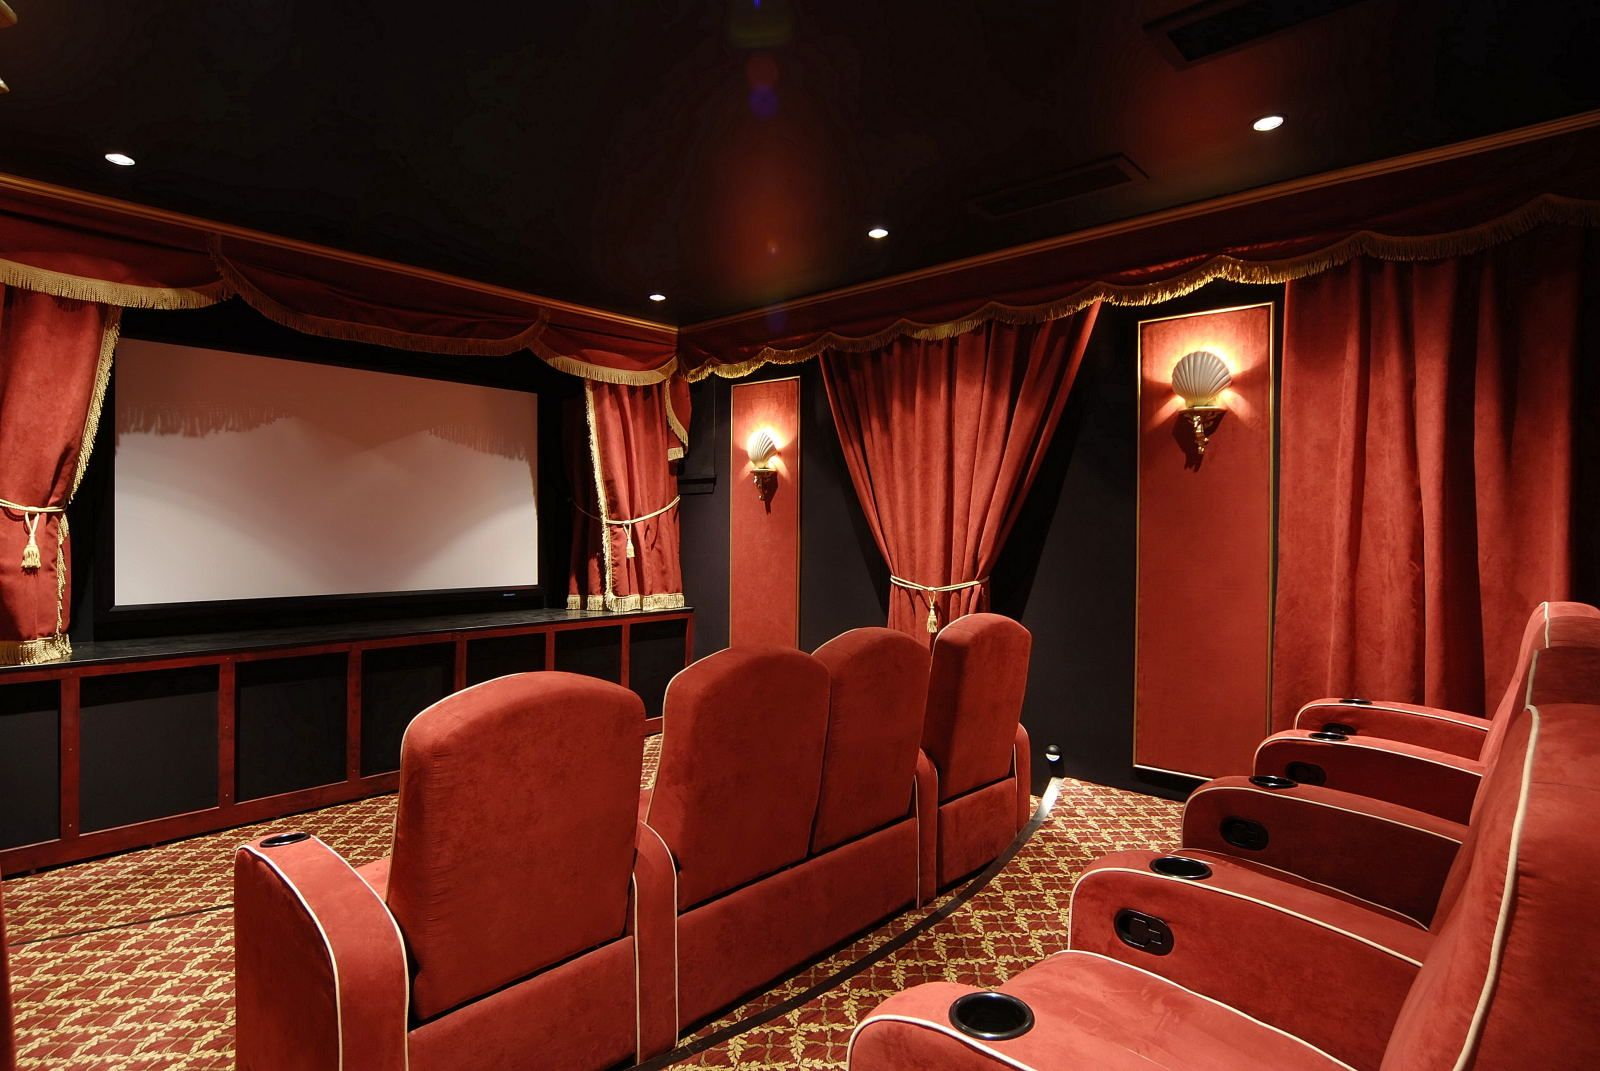 17 best images about home theater design on pinterest caves stargate and theater rooms - Home Theatre Design Ideas